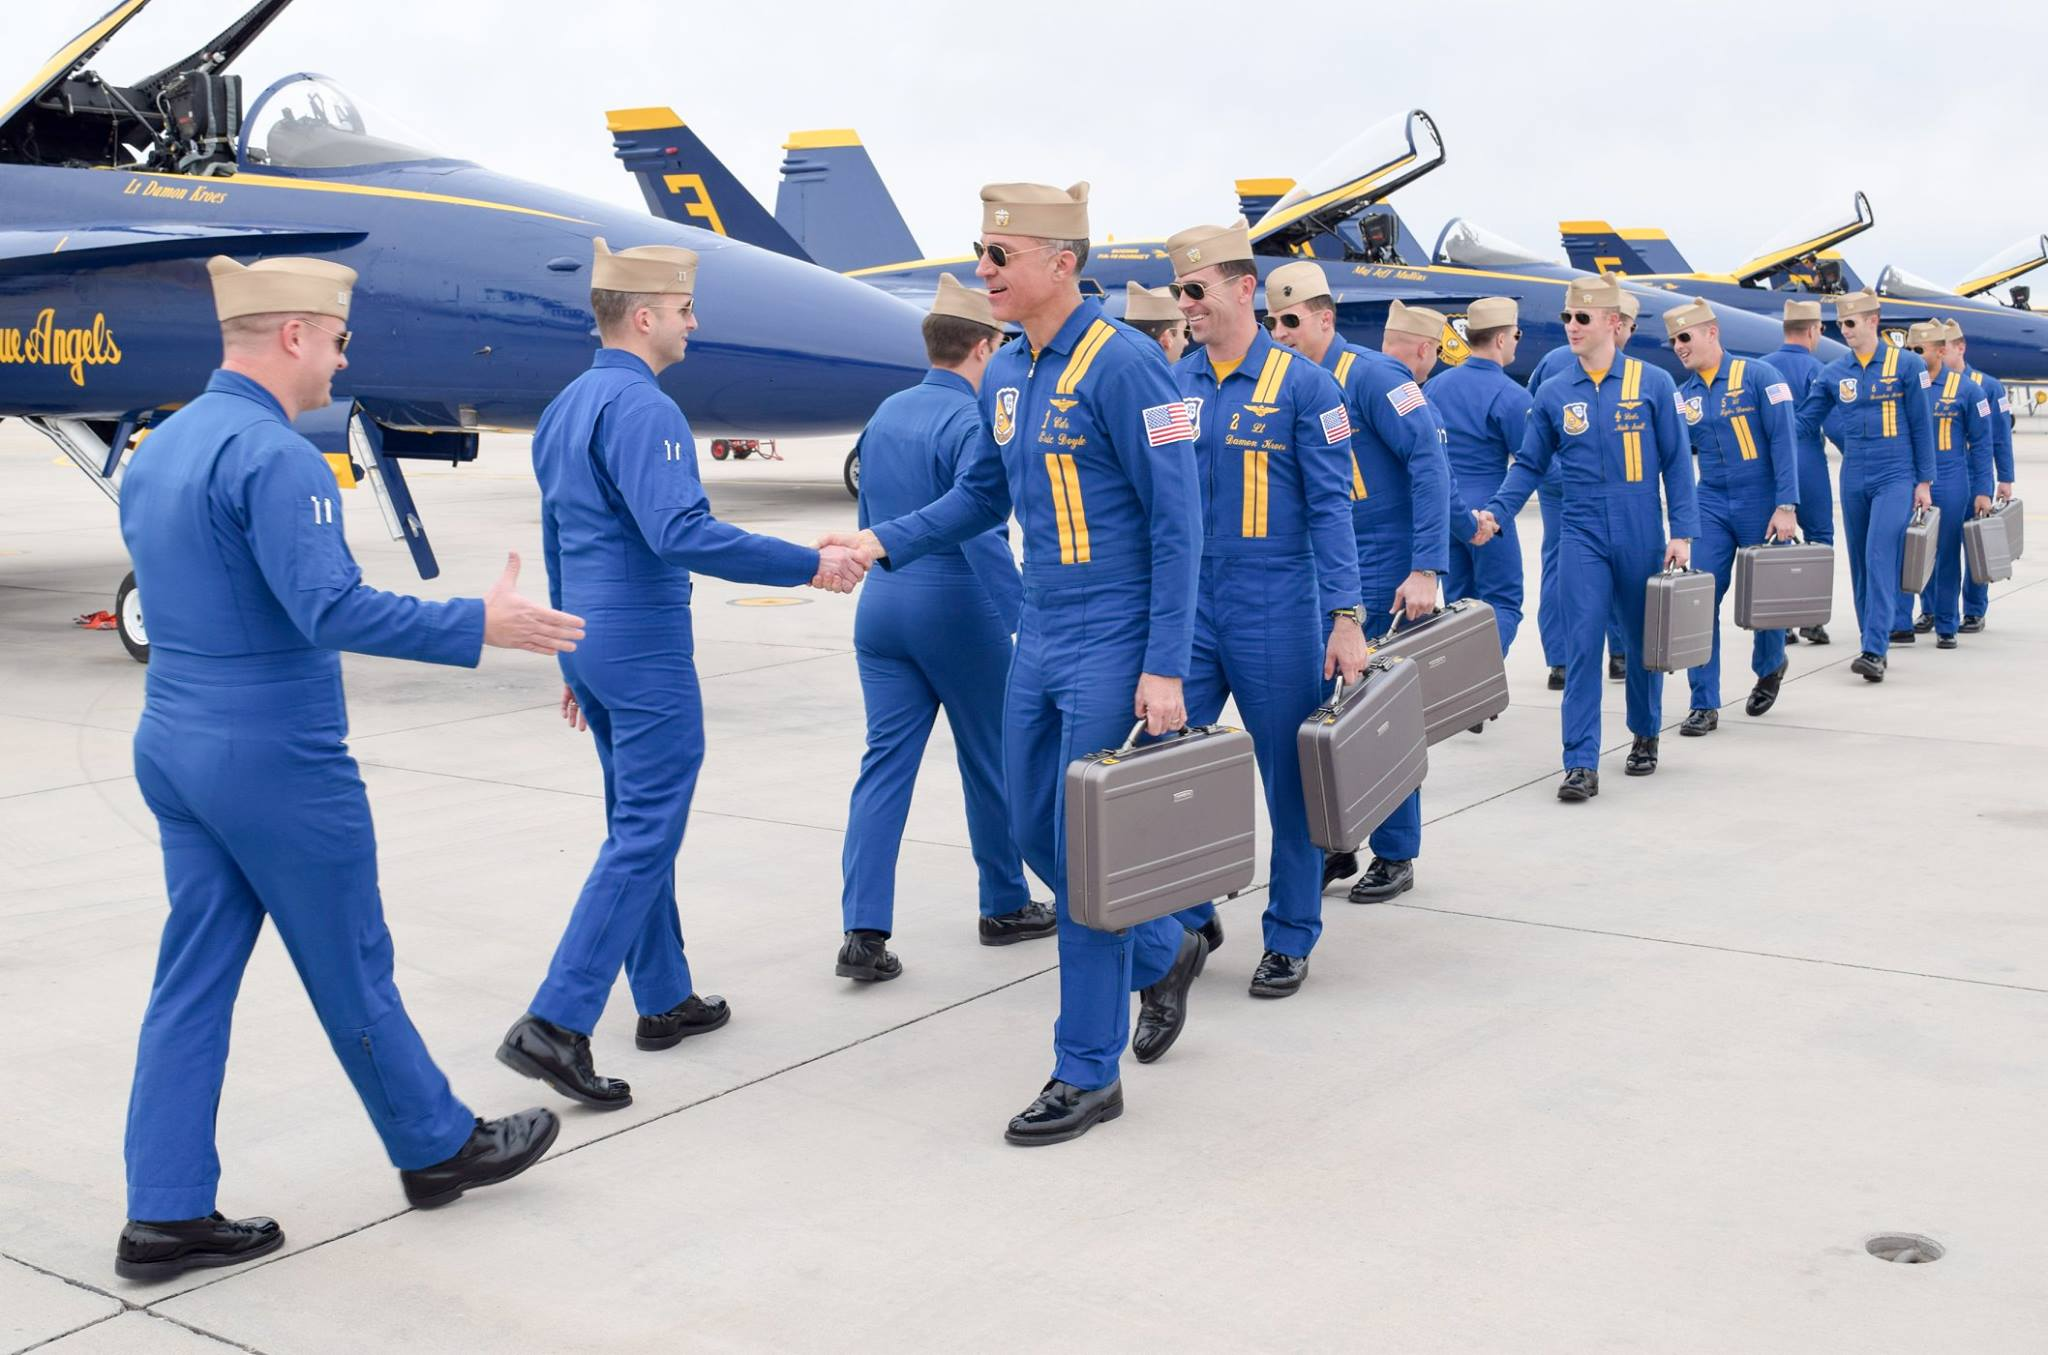 The Blue Angels arrive at NAF El Centro for winter training in January of 2018.